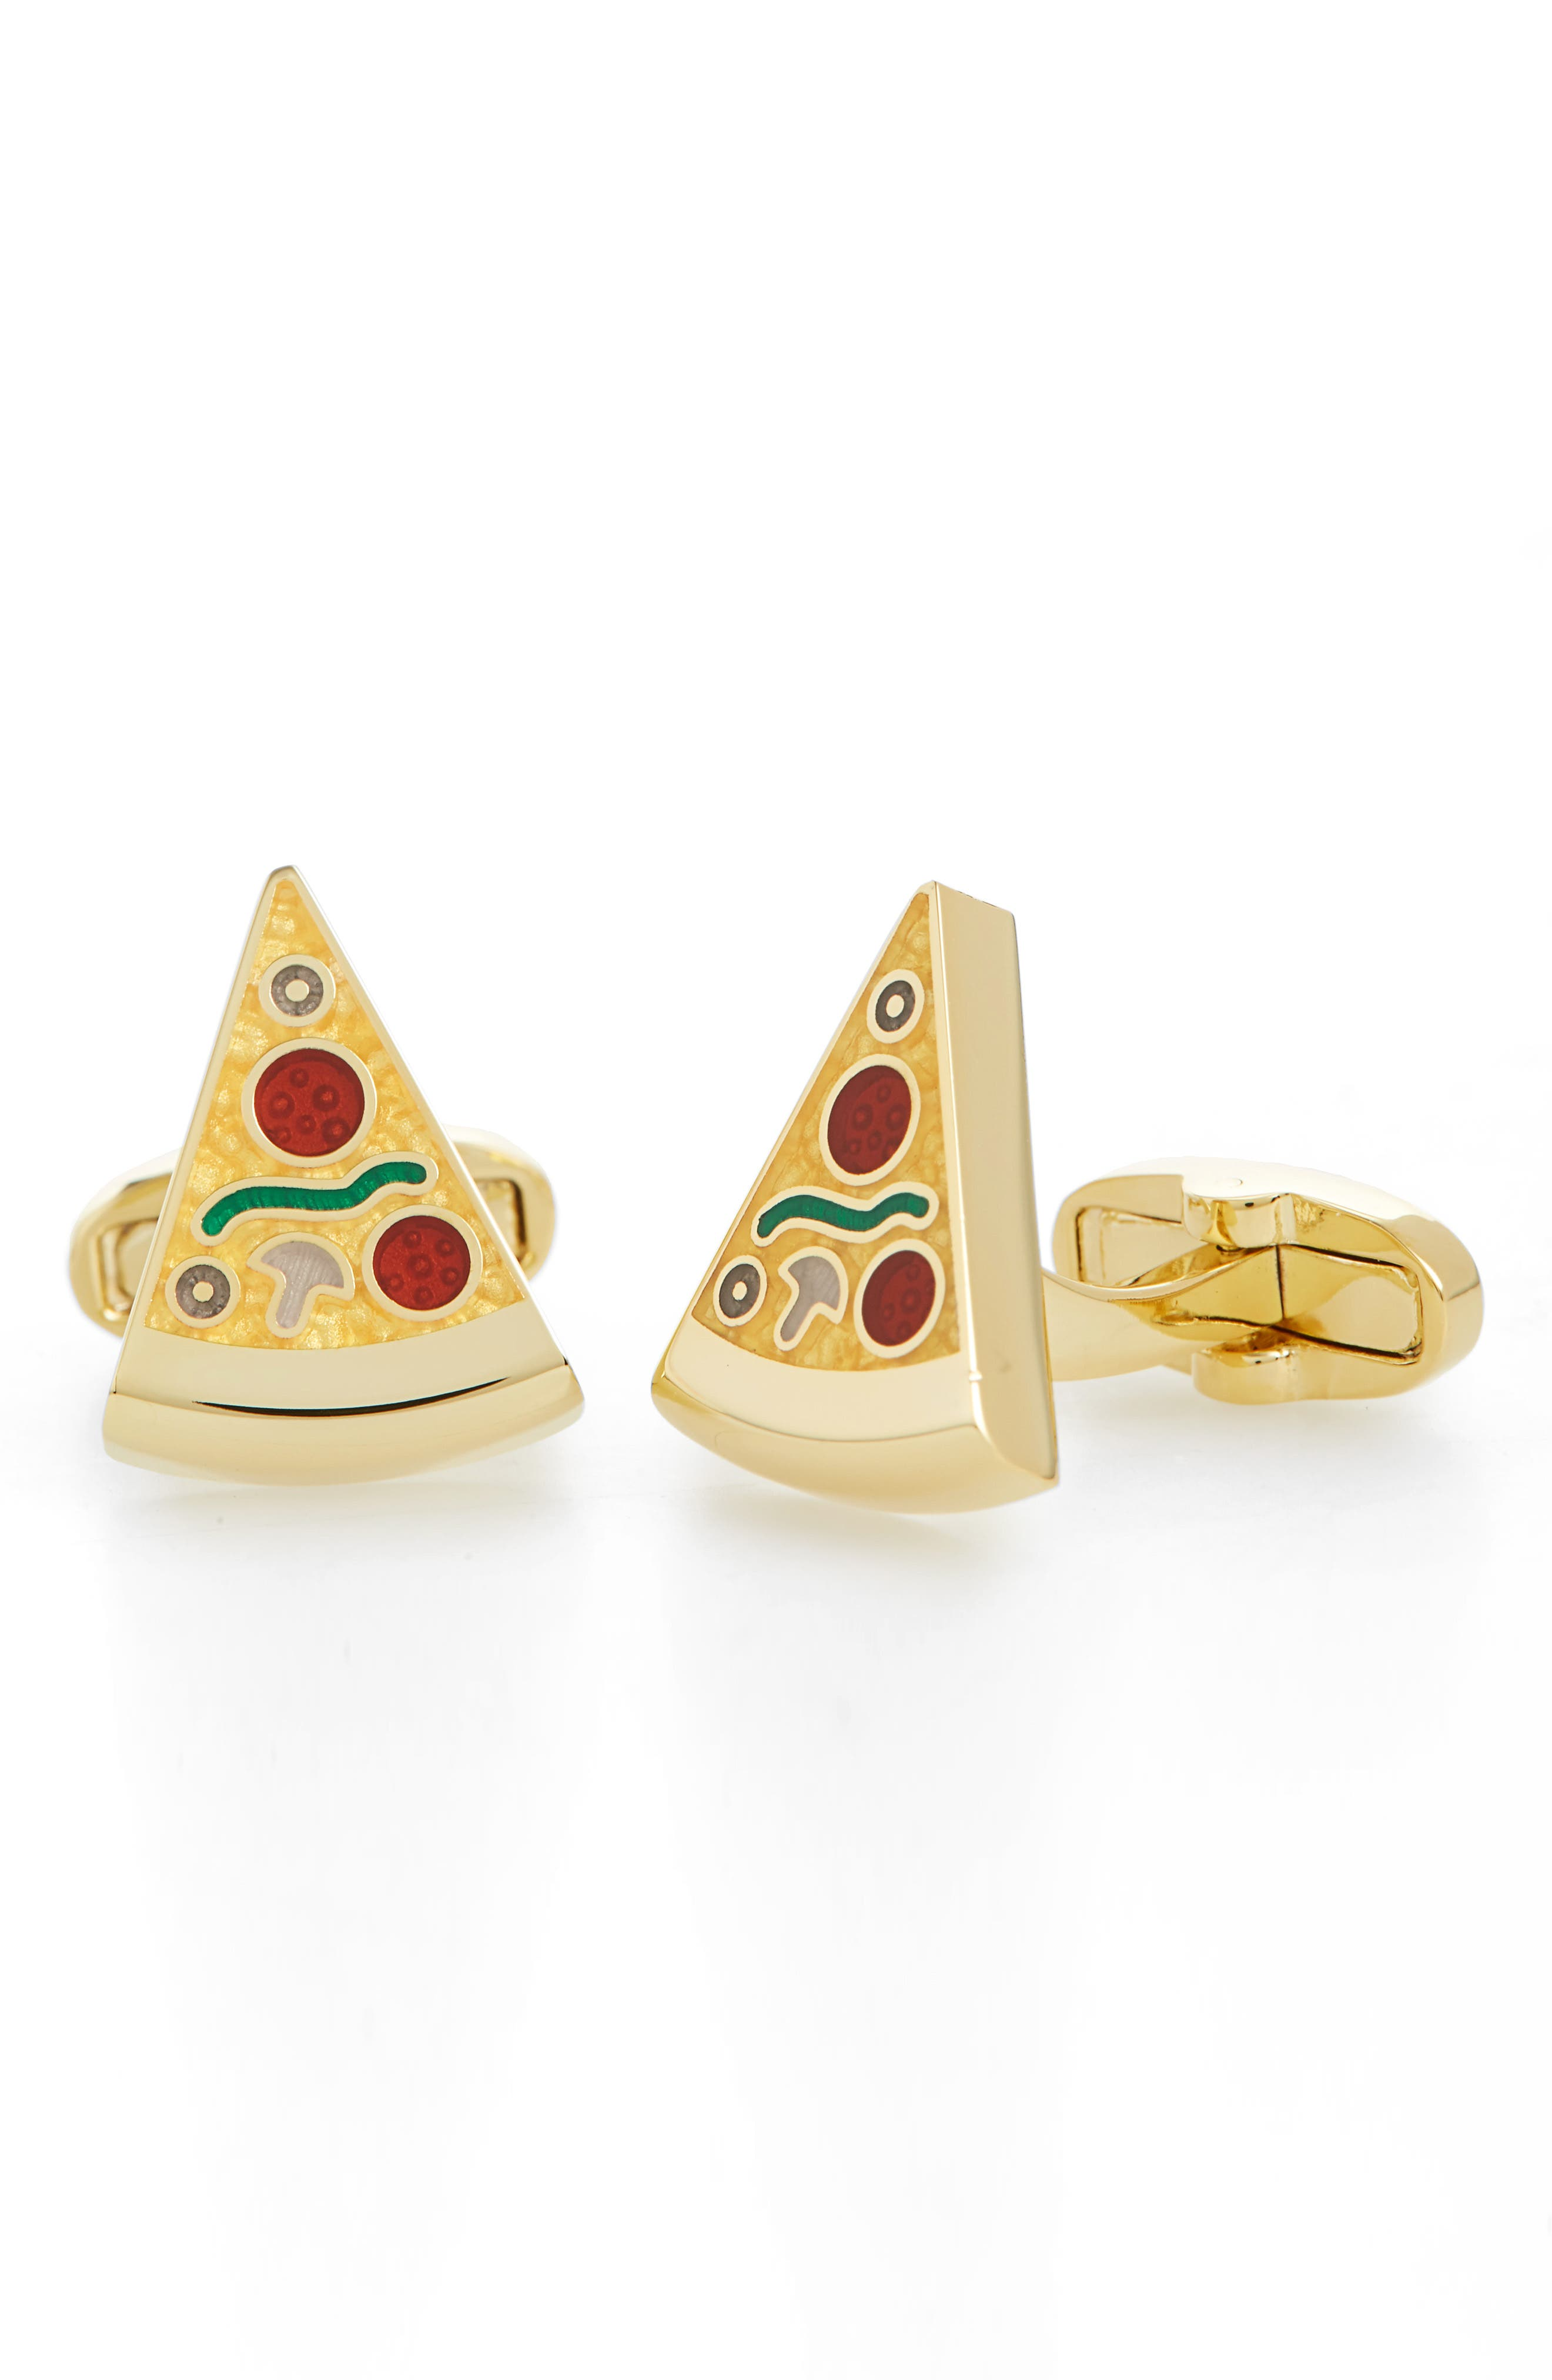 Paul Smith Pizza Cuff Links